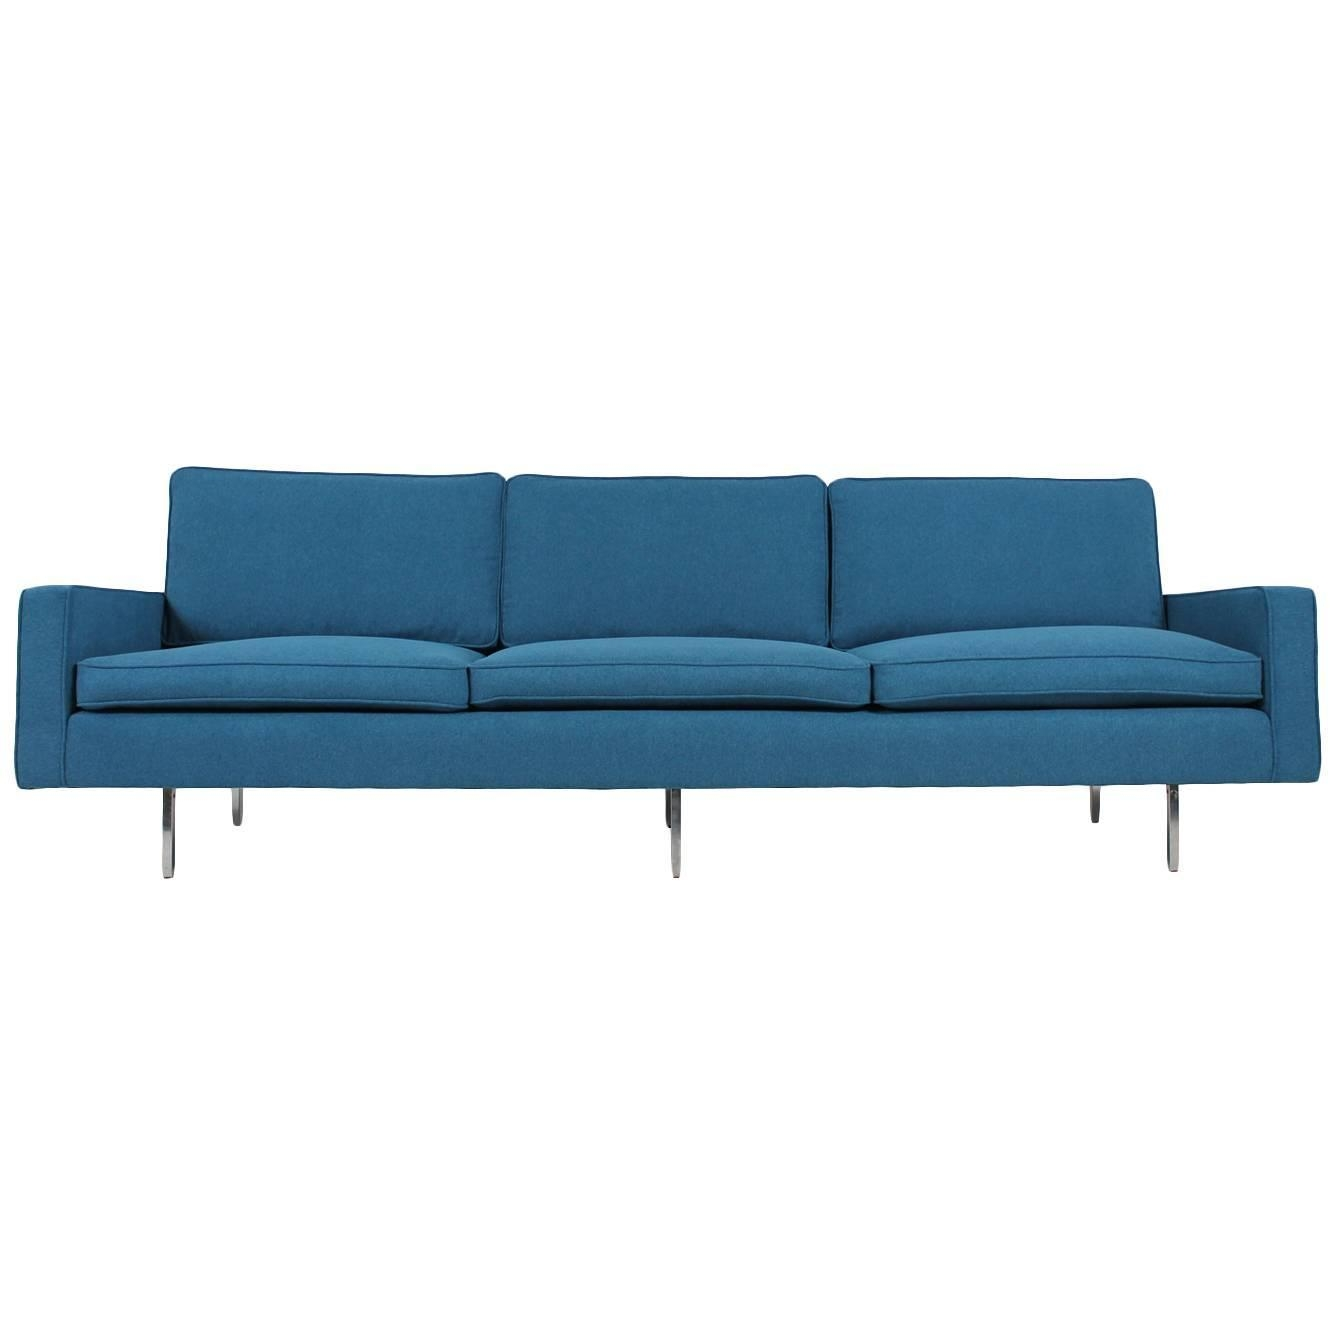 Beautiful Mid Century Florence Knoll Sofa Mod 25 Bc Knoll Regarding Florence Knoll Style Sofas (Photo 4 of 15)